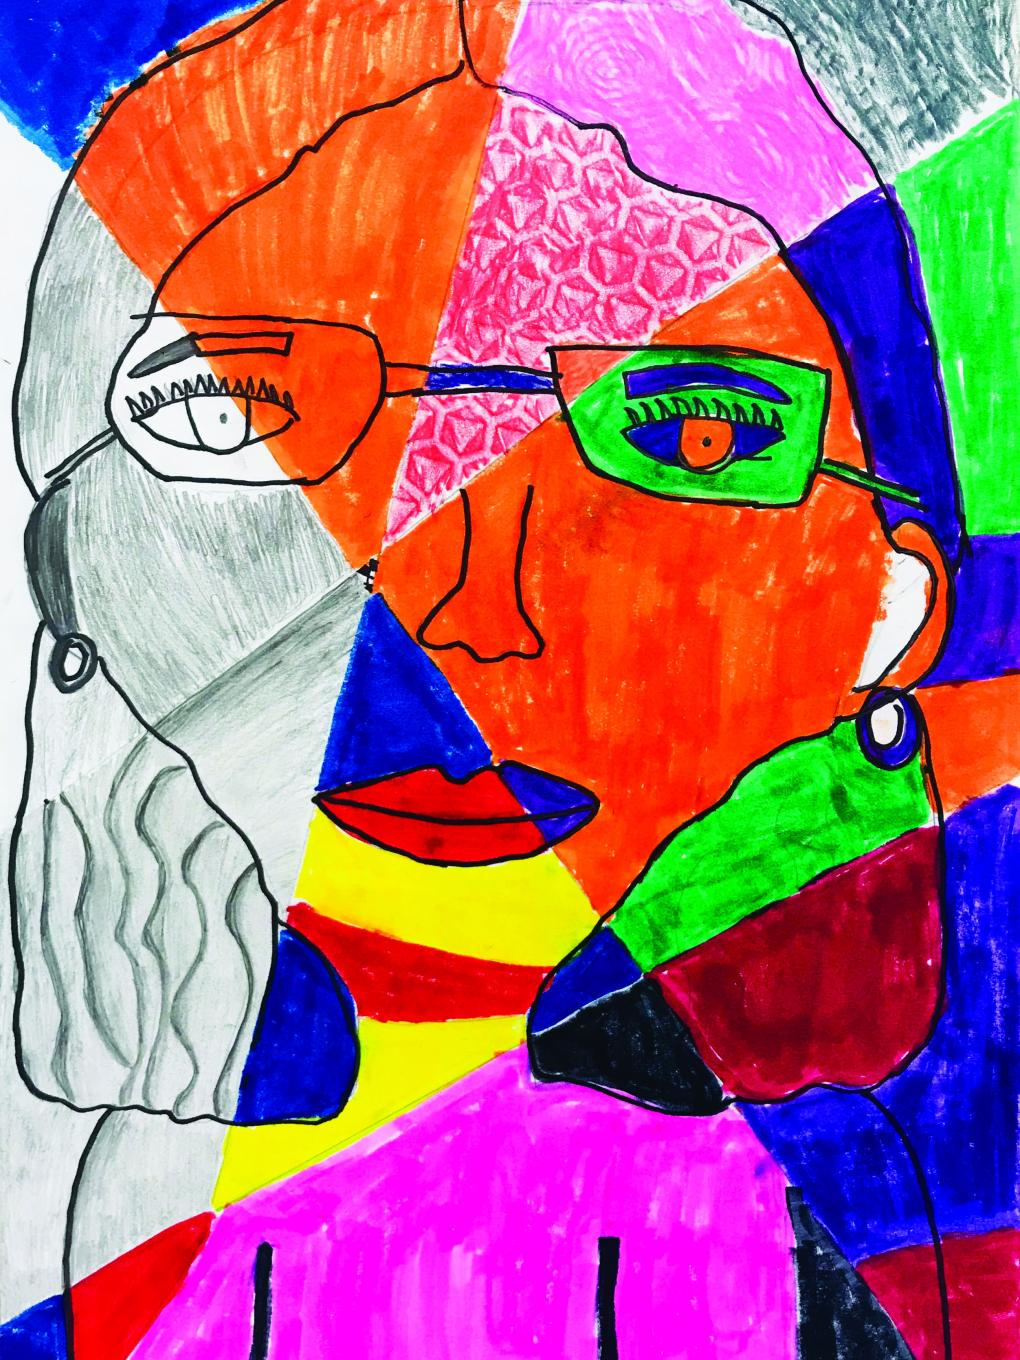 Cubism-style drawing of girl with glasses using bright colors